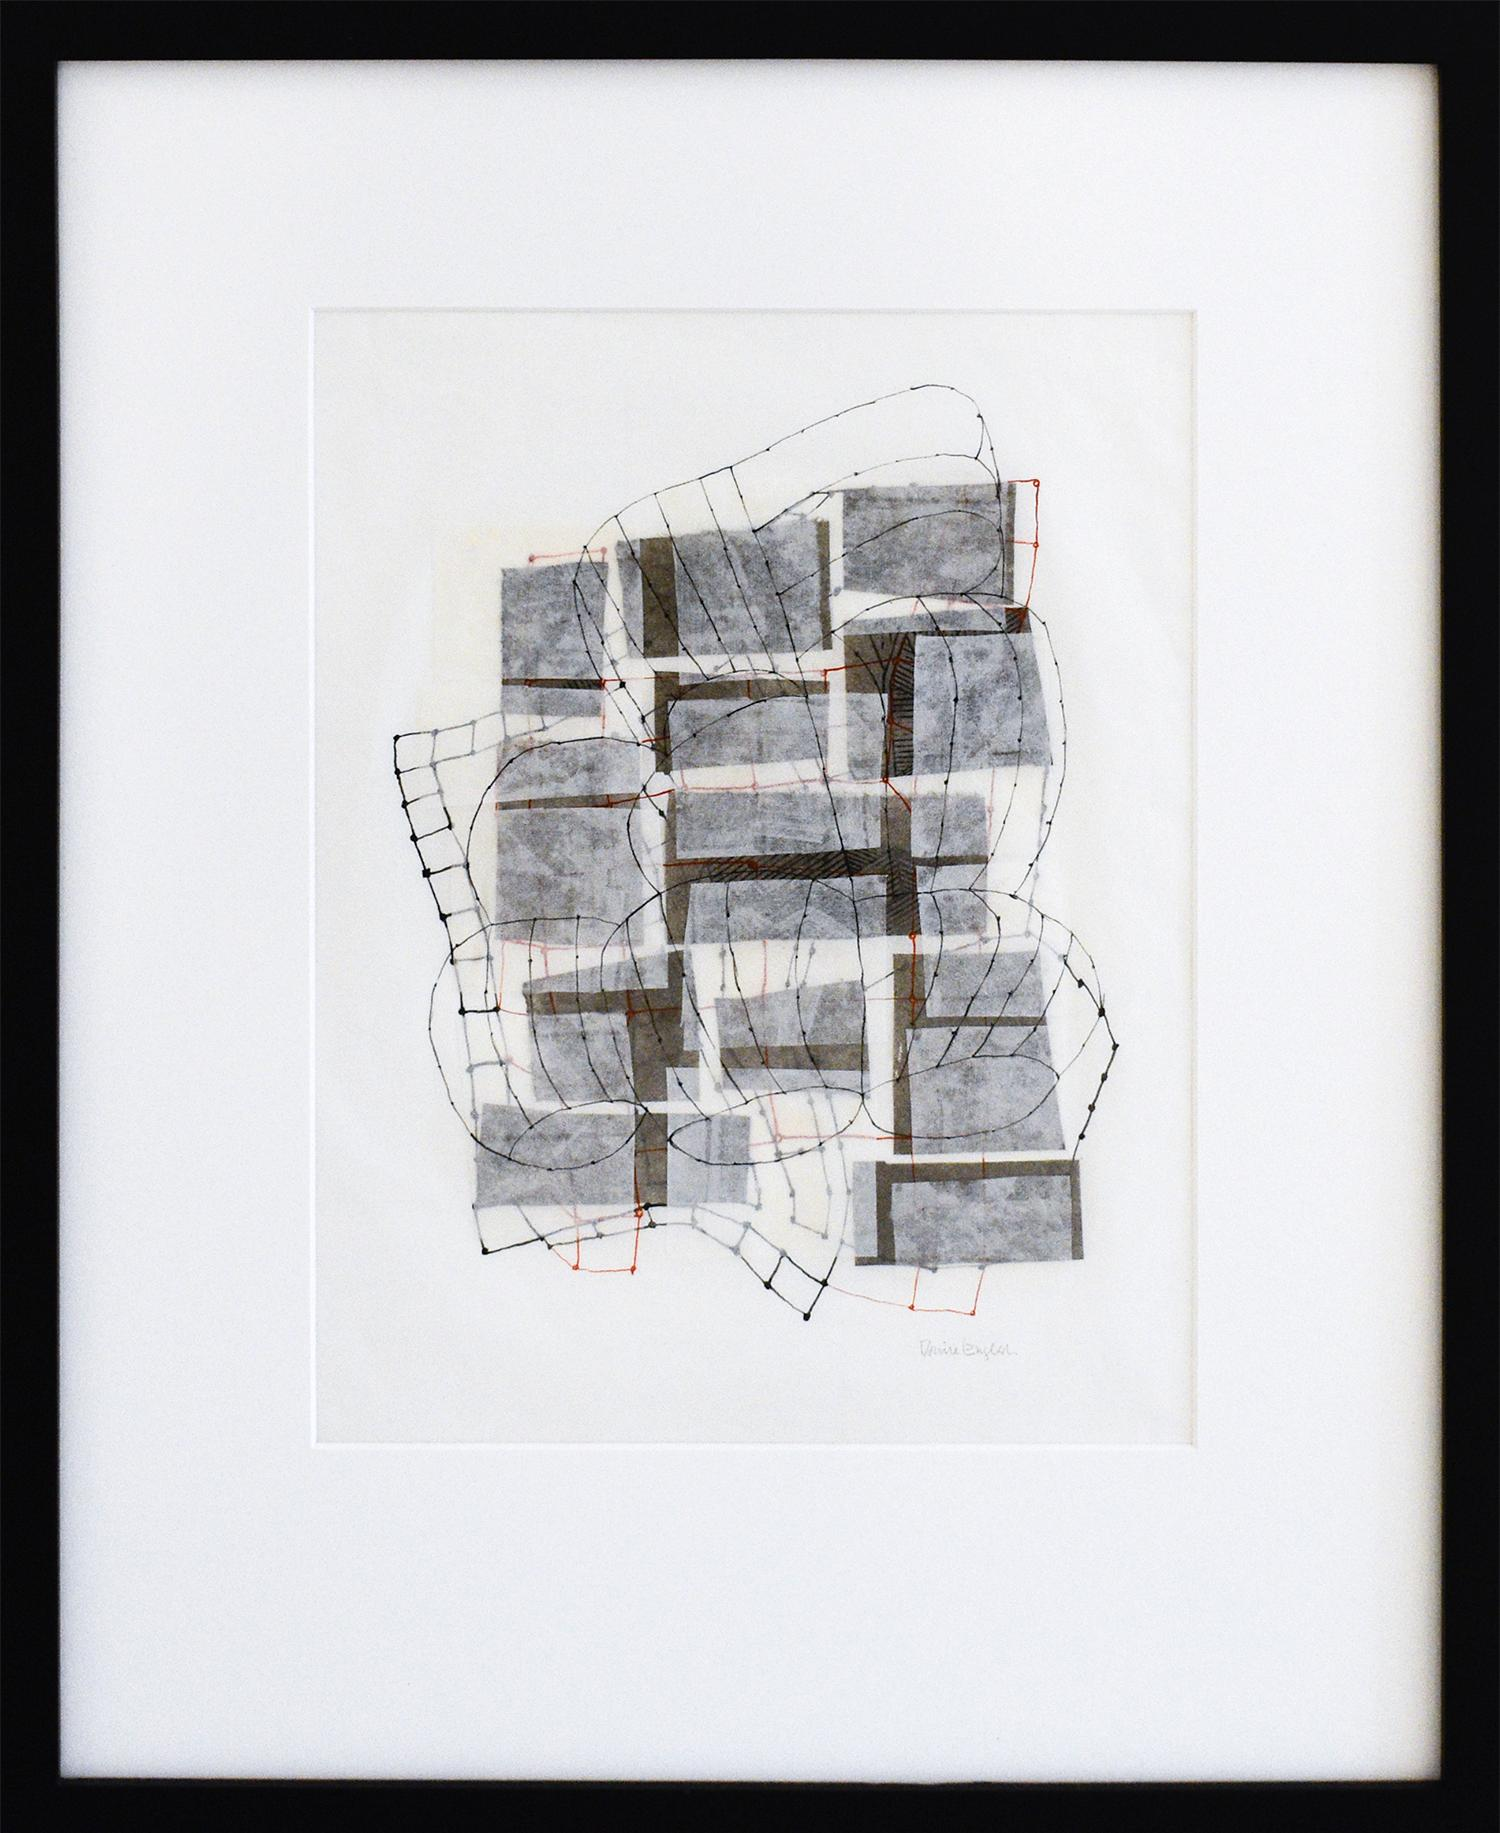 Layered Plan #6 (Abstract Geometric Black & White Mixed Media Collage on Paper)